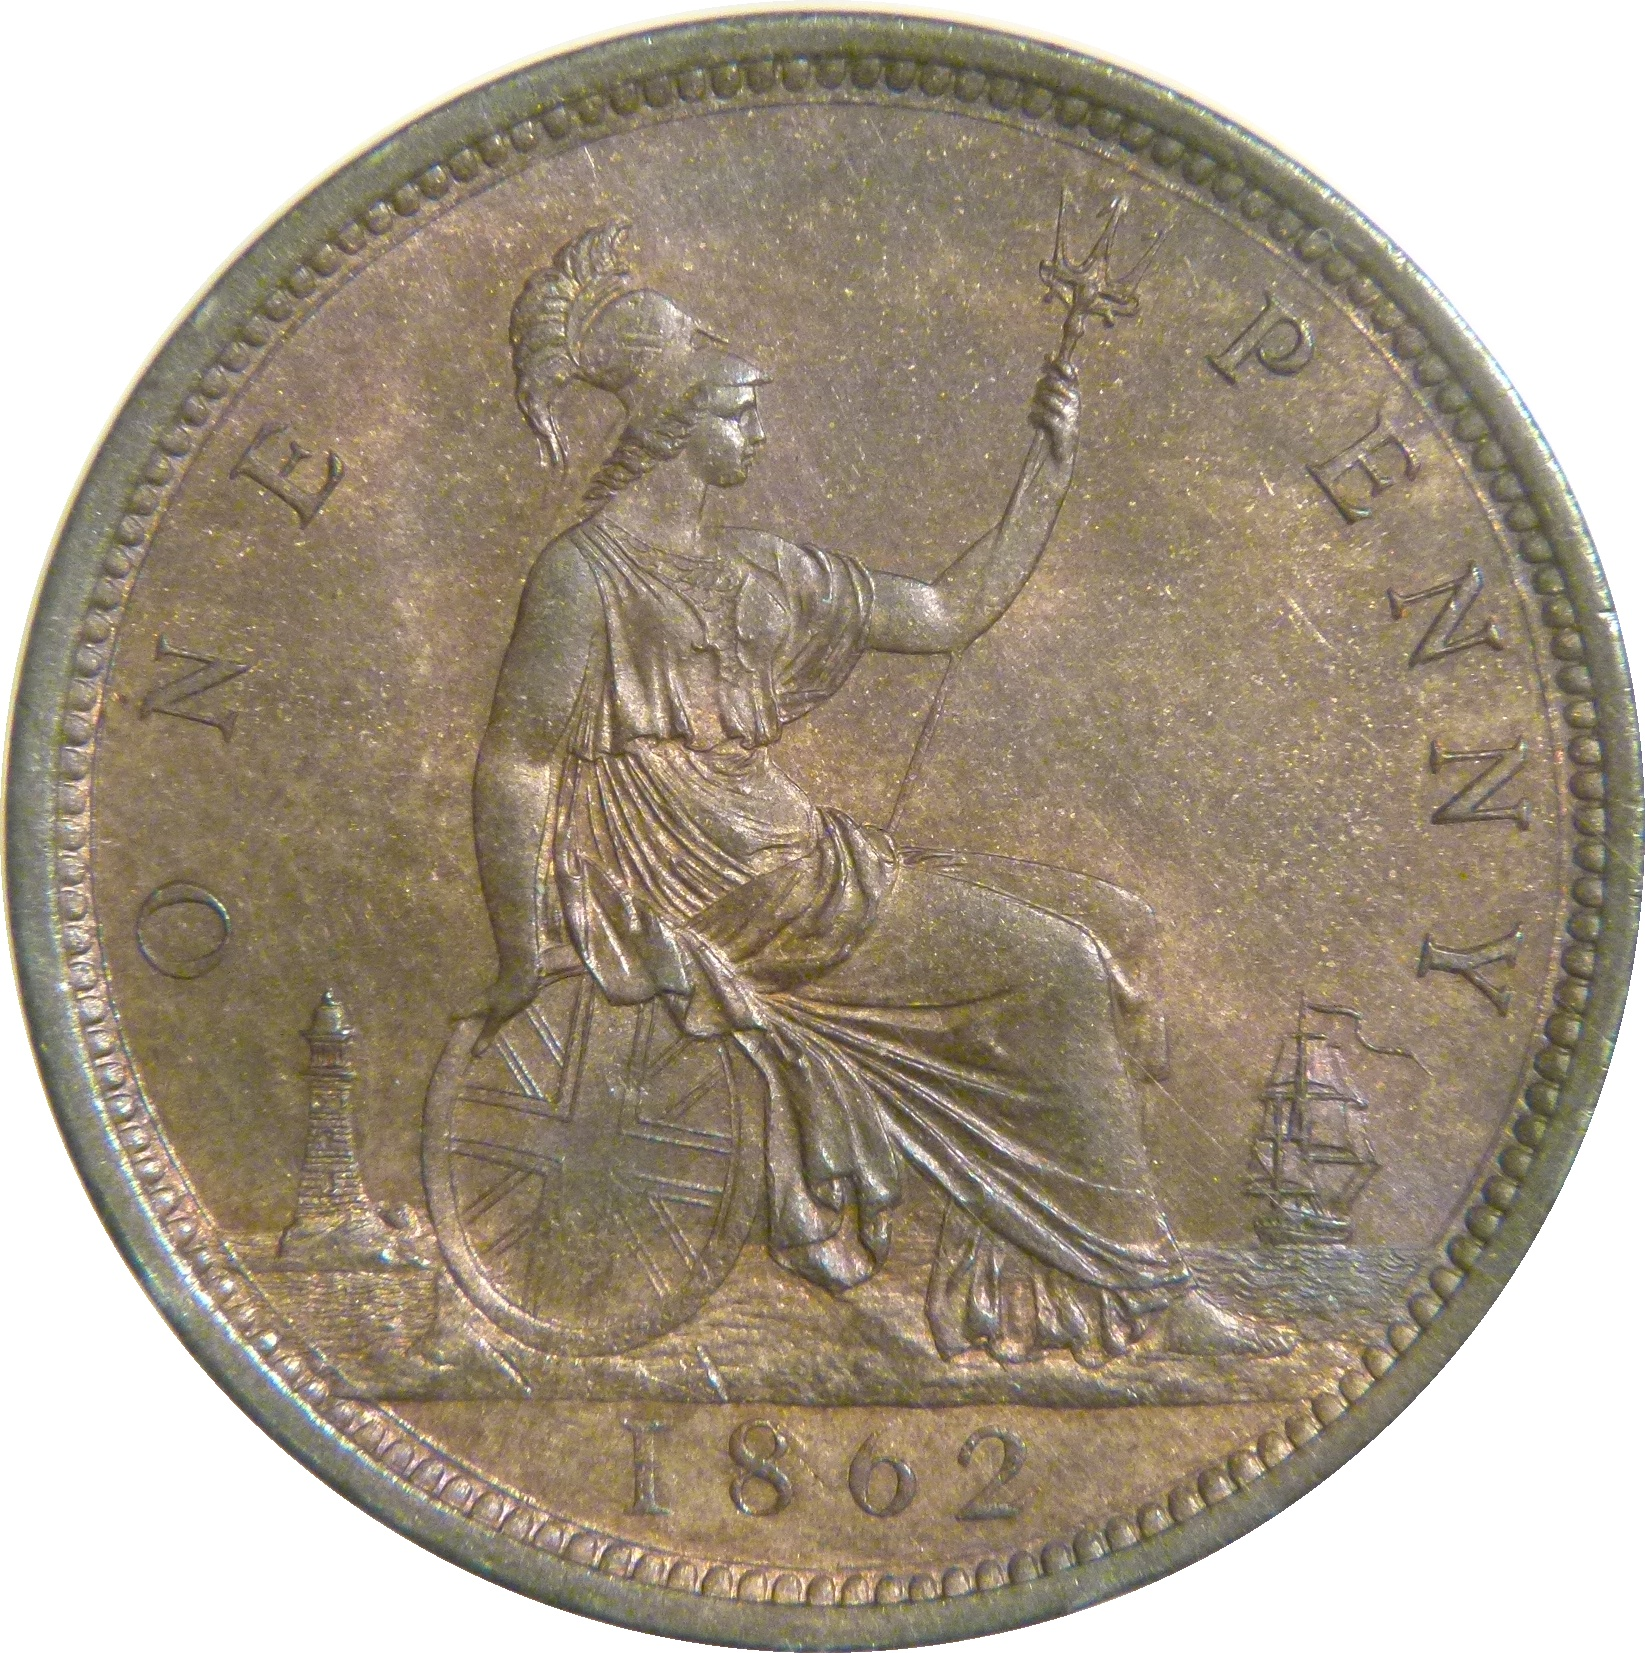 1862 Penny, UNC, CGS 78(MS 63-64), Victoria, Freeman 39, Dies 6+G, UIN 29979 at auction on Facebook